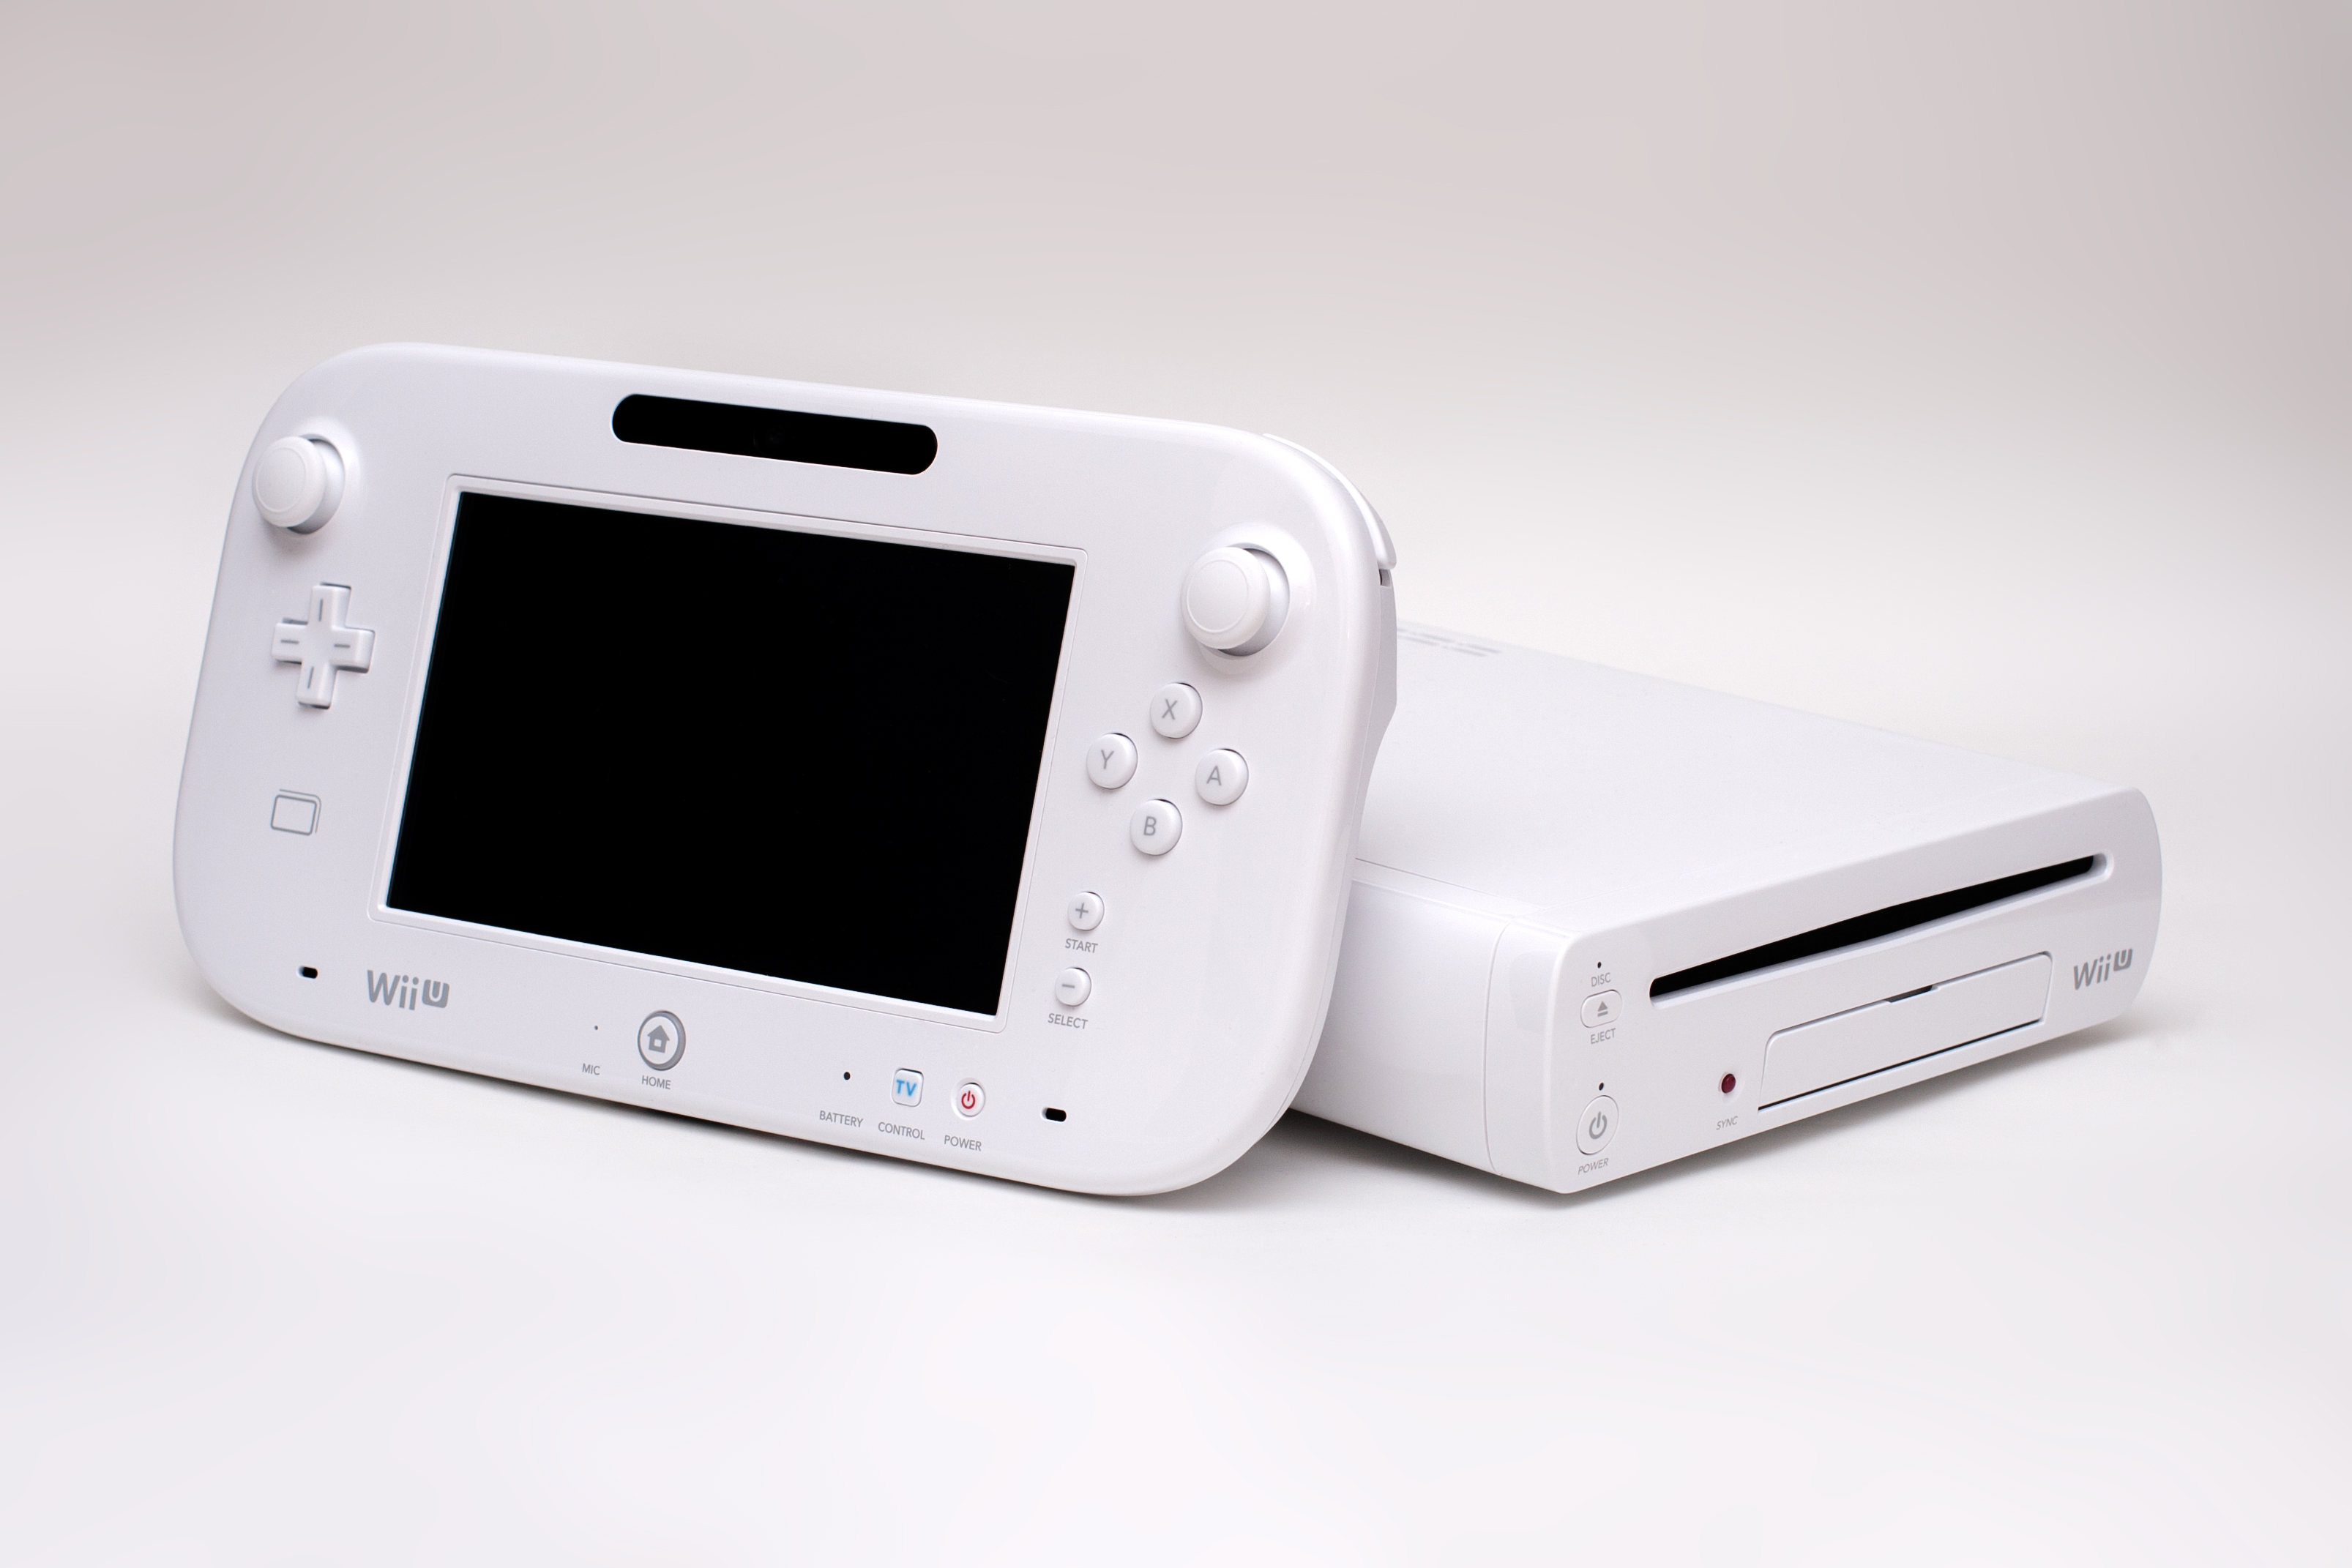 The Wii U Needs a Makeover